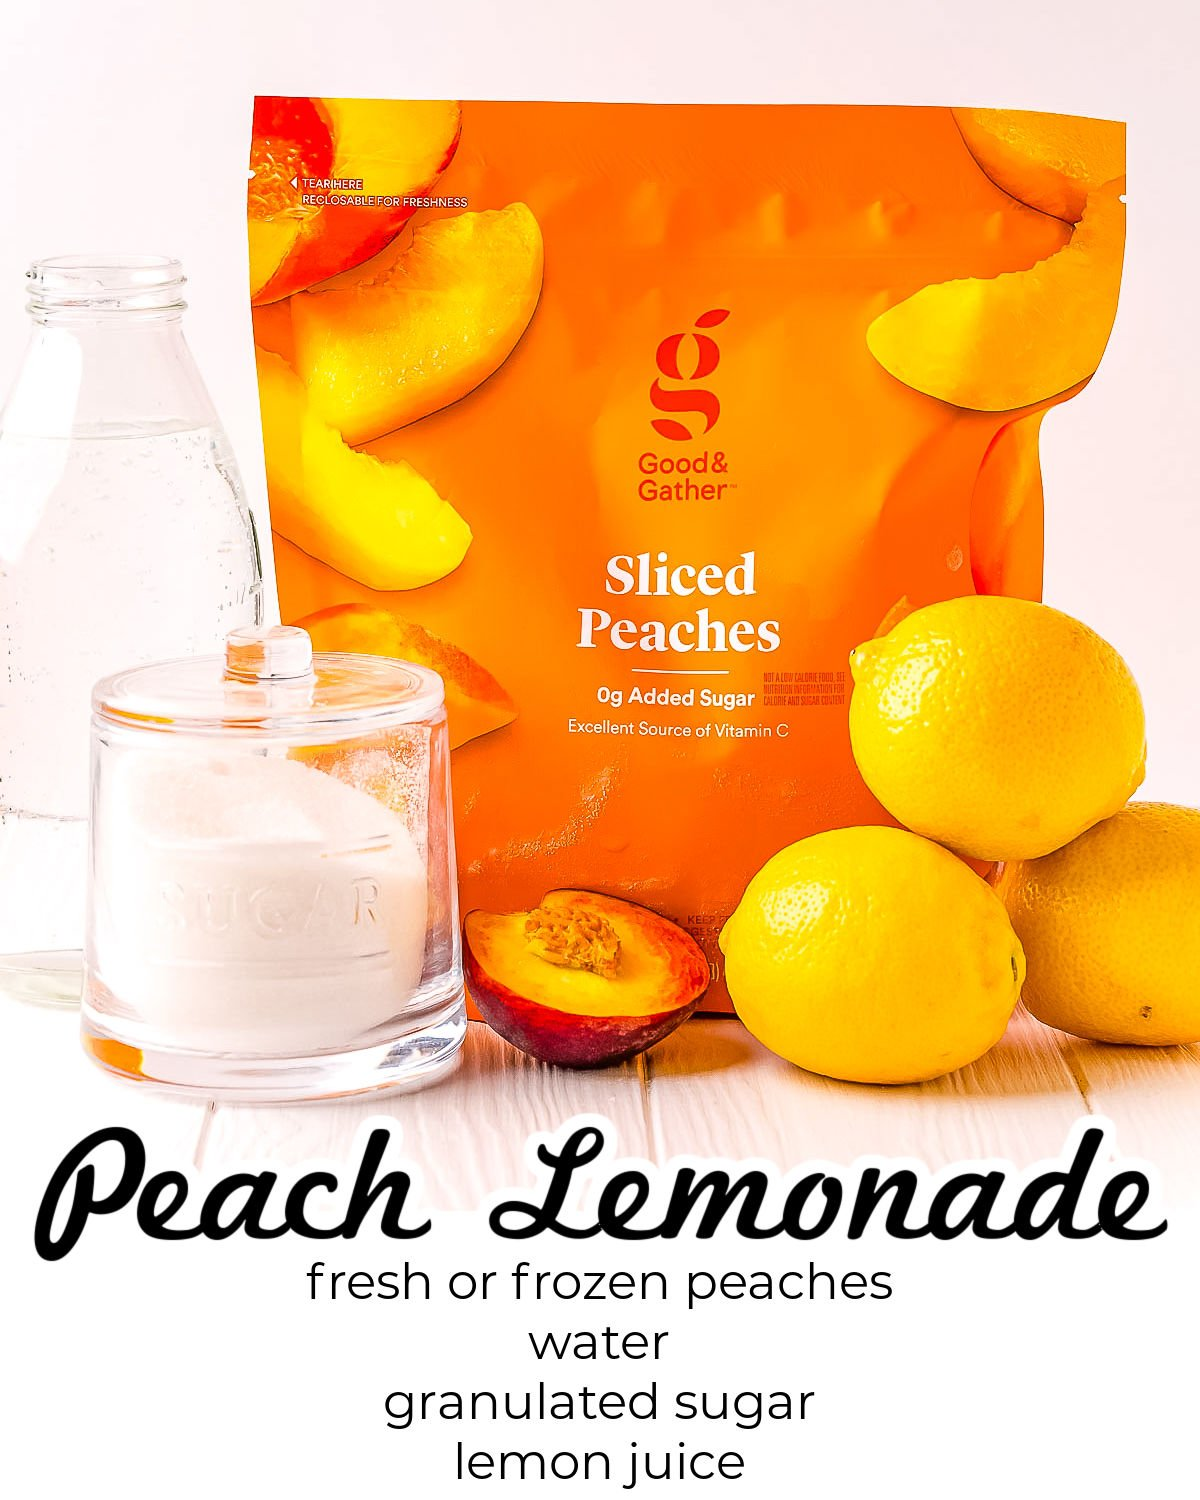 All of the ingredients needed to make this Peach Lemonade recipe.